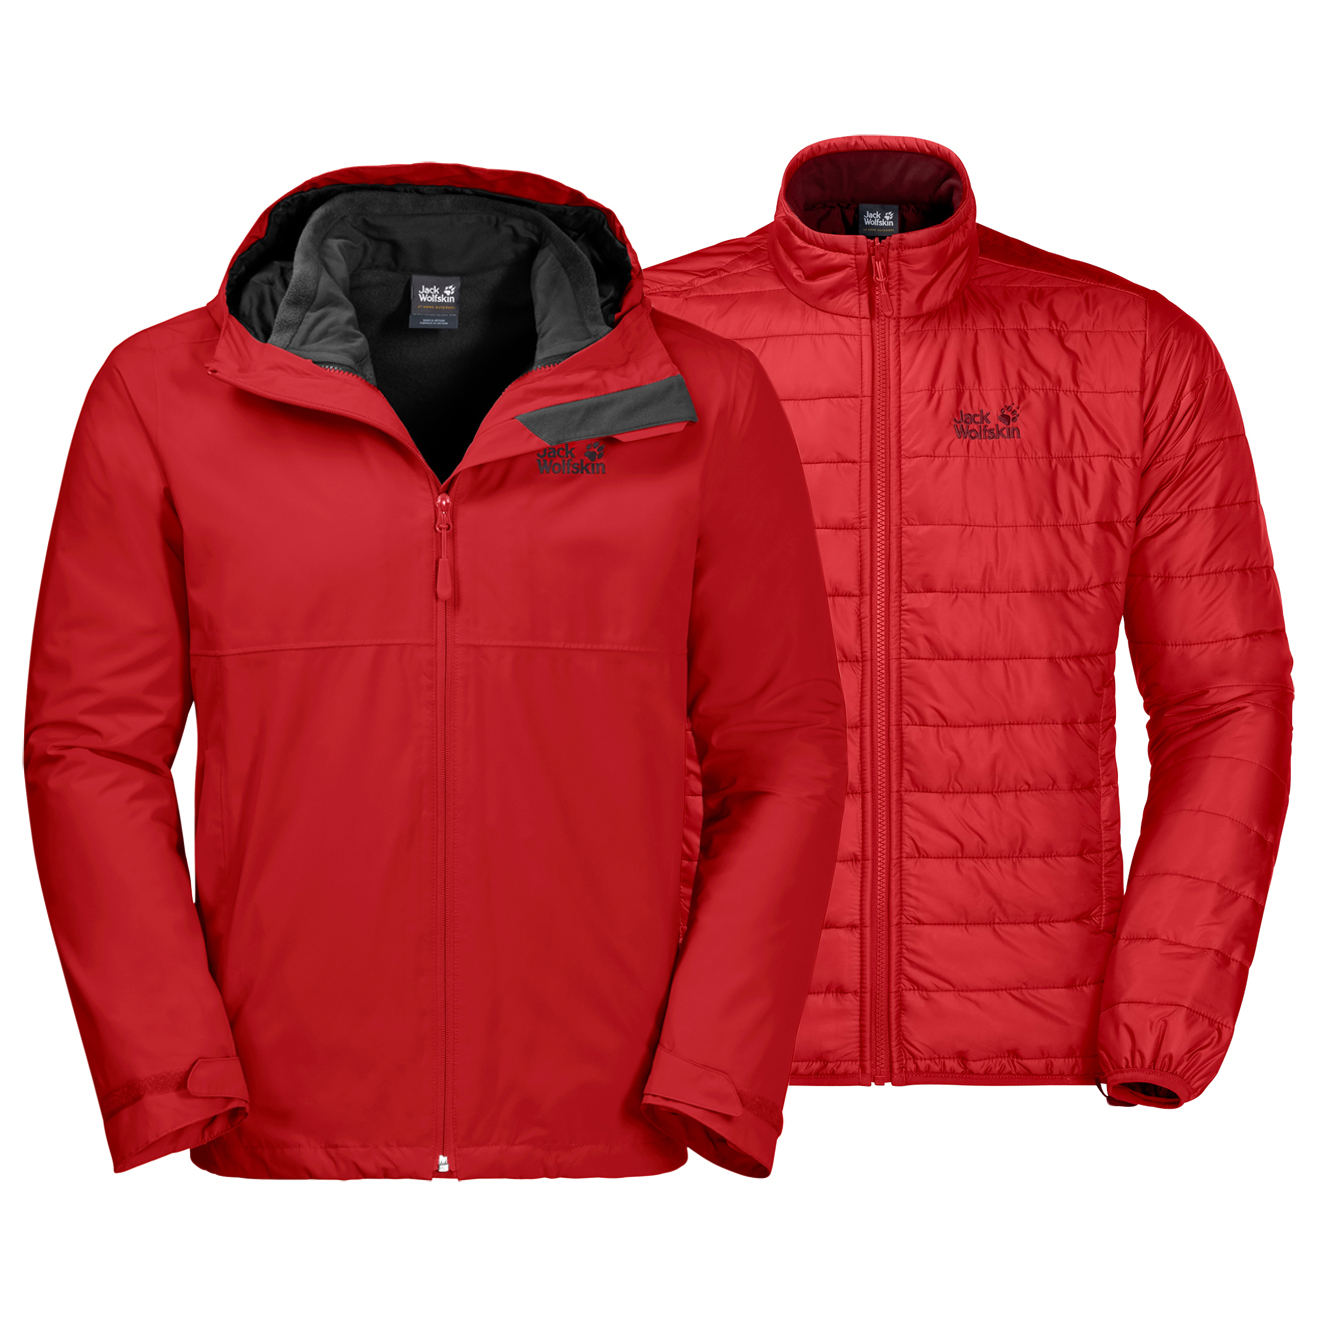 new arrivals e7915 96cc1 Jack Wolfskin North Fjord Jacket - Giacca doppia Uomo ...